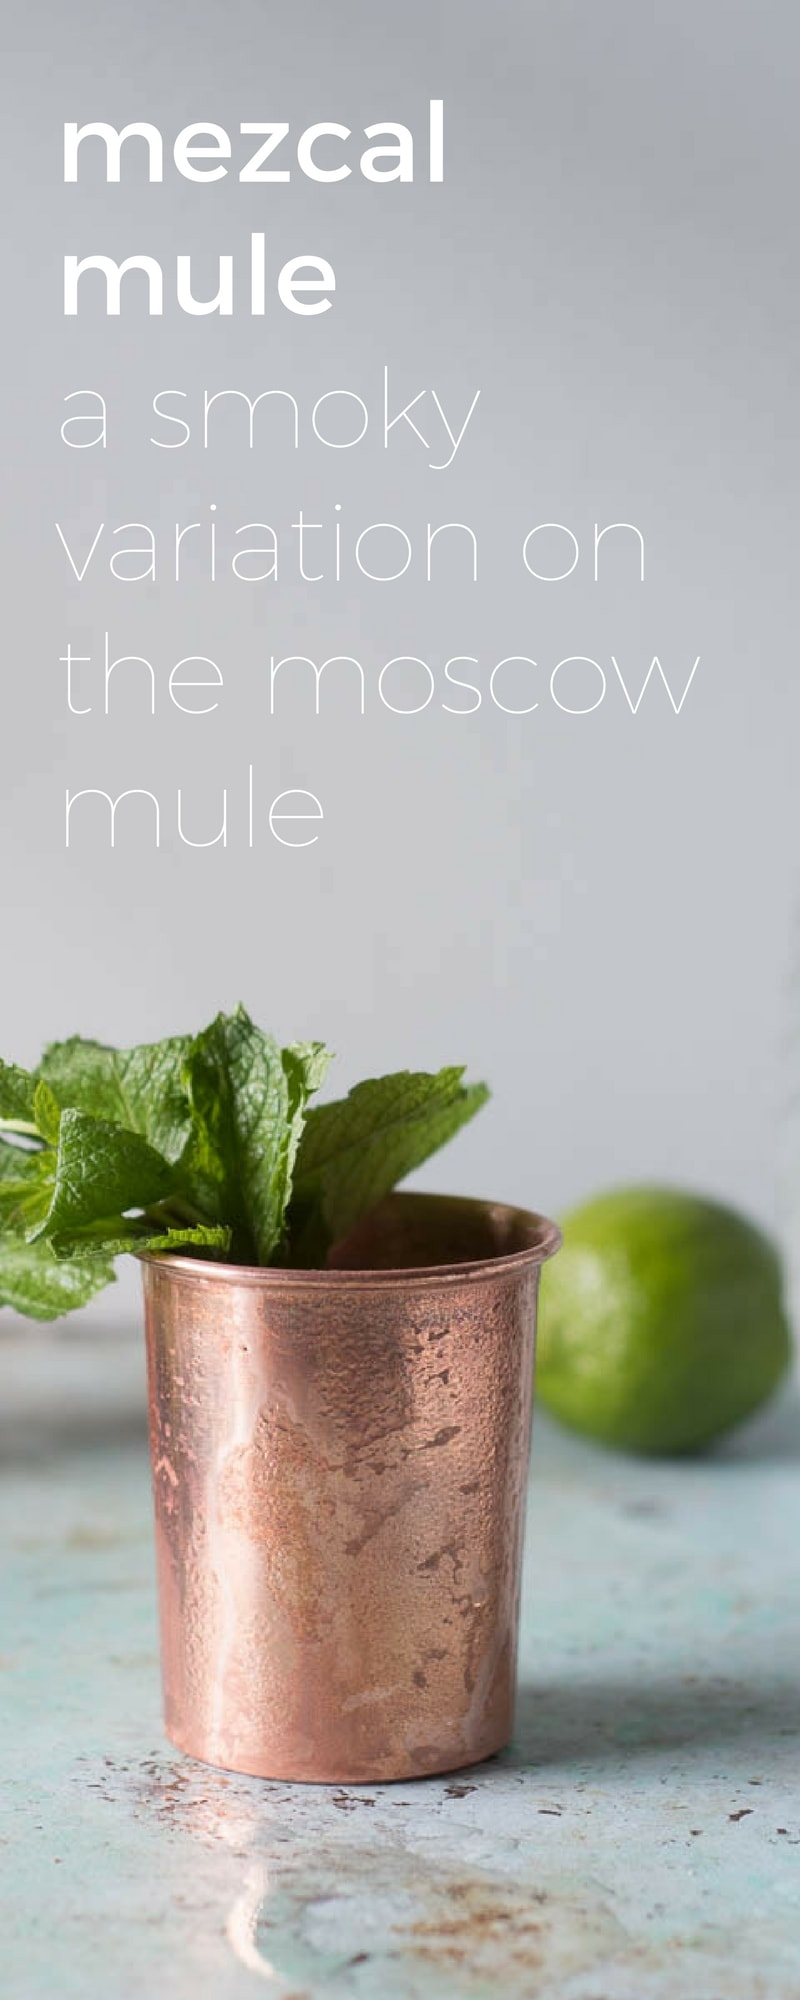 Mezcal Mule. A smoky variation on the Moscow Mule cocktail. From Blossom to Stem | www.blossomtostem.net